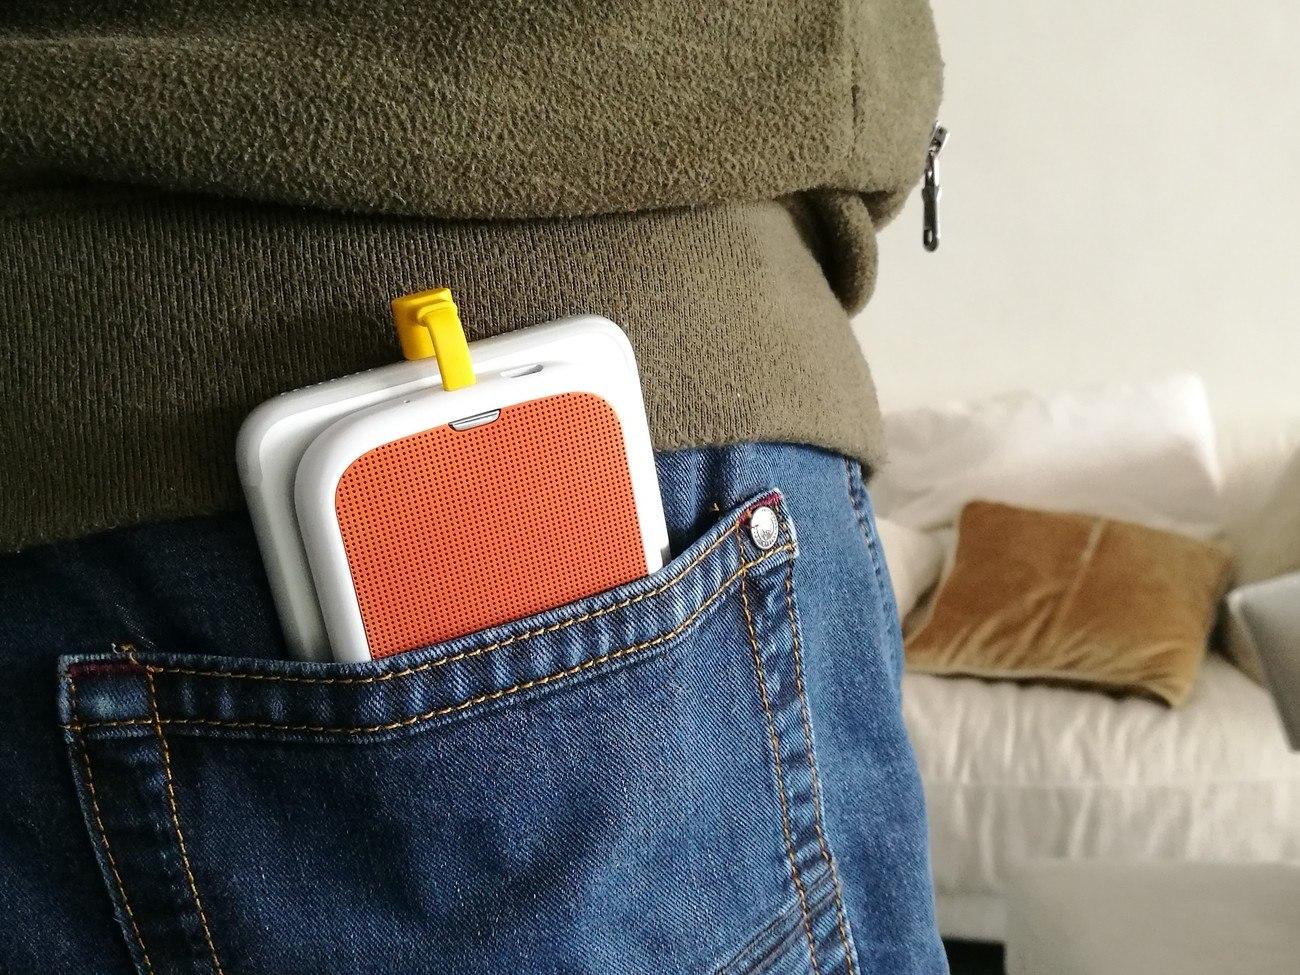 CELLO Smartphone Battery Stand